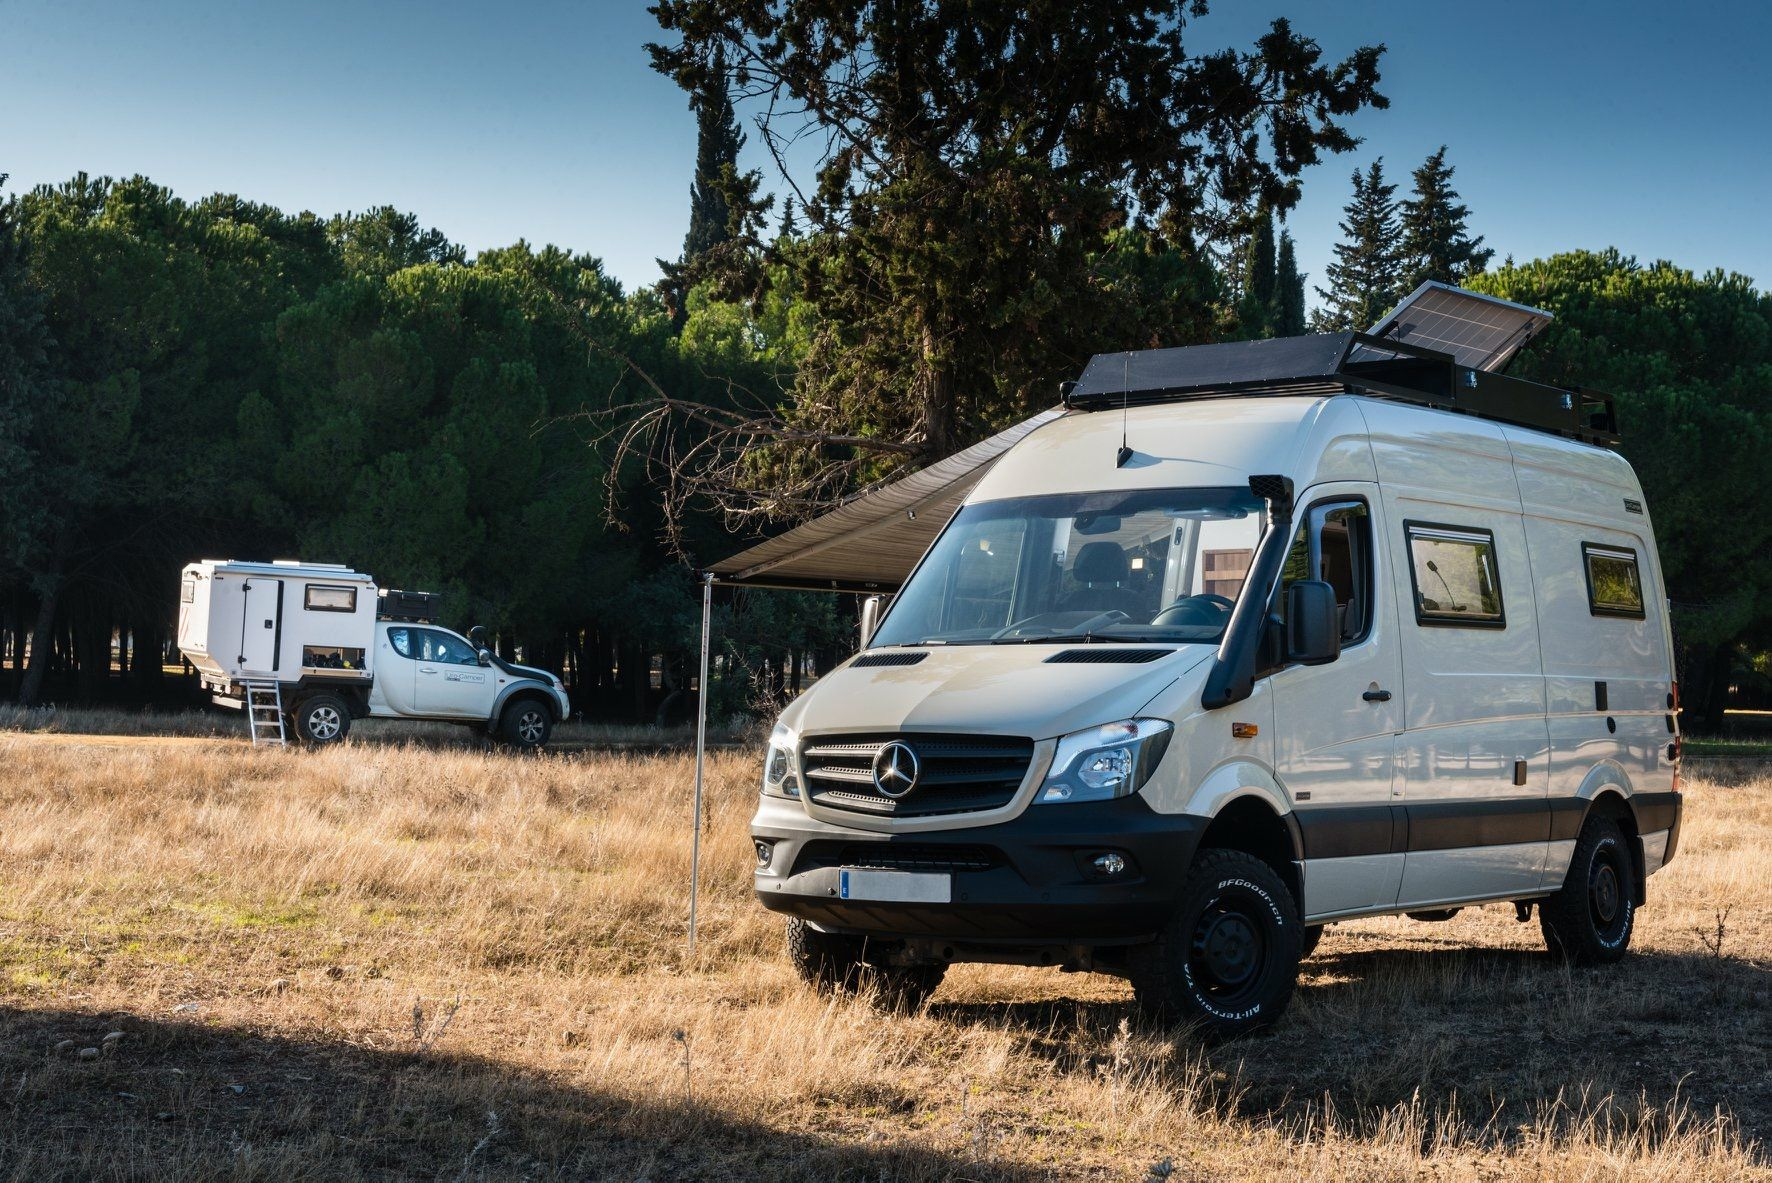 Mercedes Sprinter 4x4 Oryx Uro camper on the road